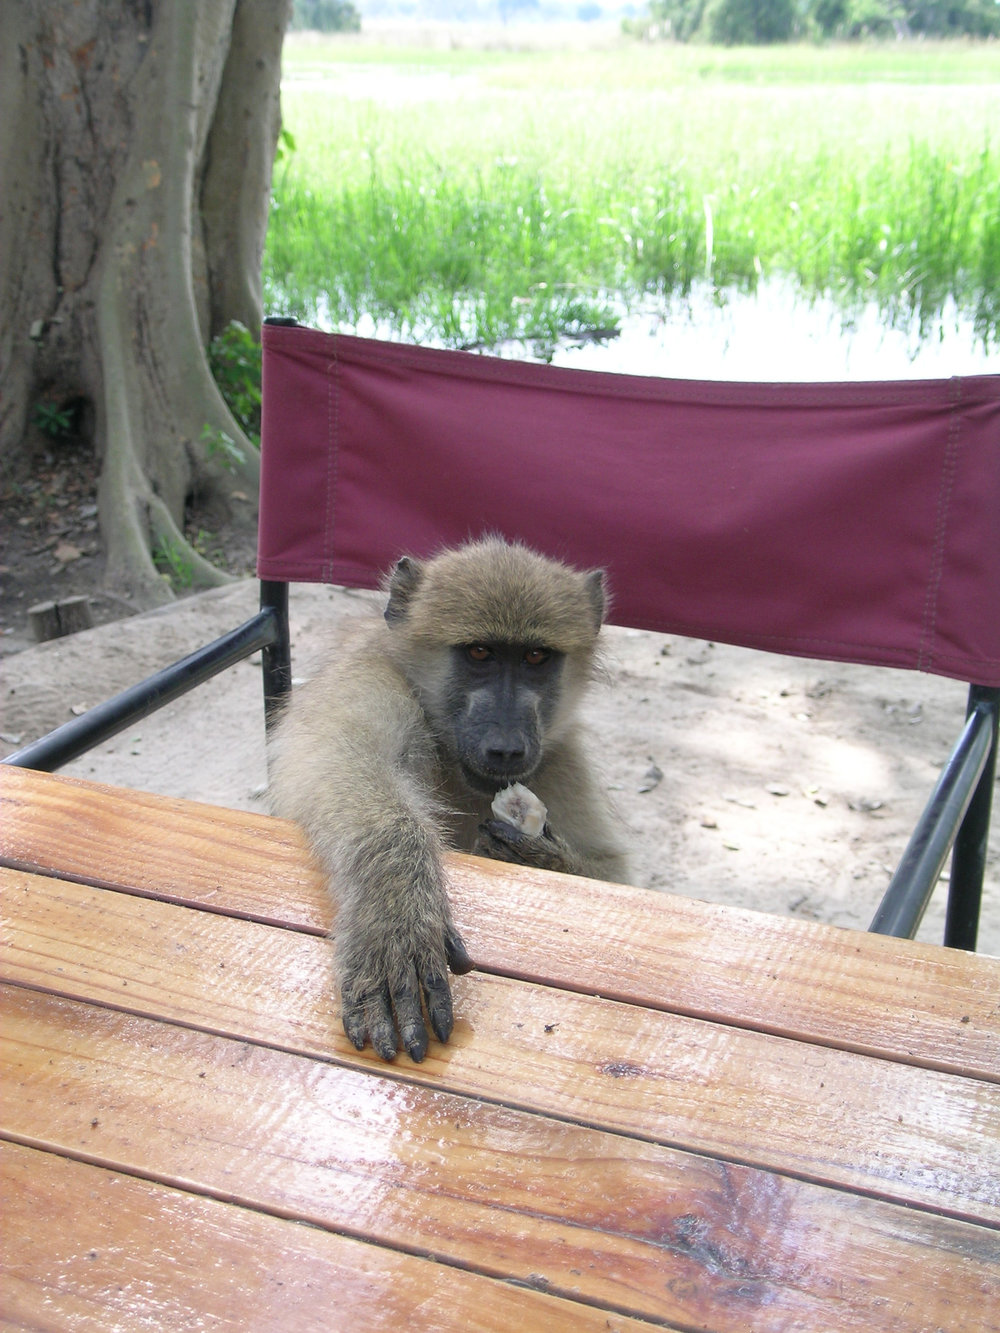 Ruby the baboon invited herself for dinner